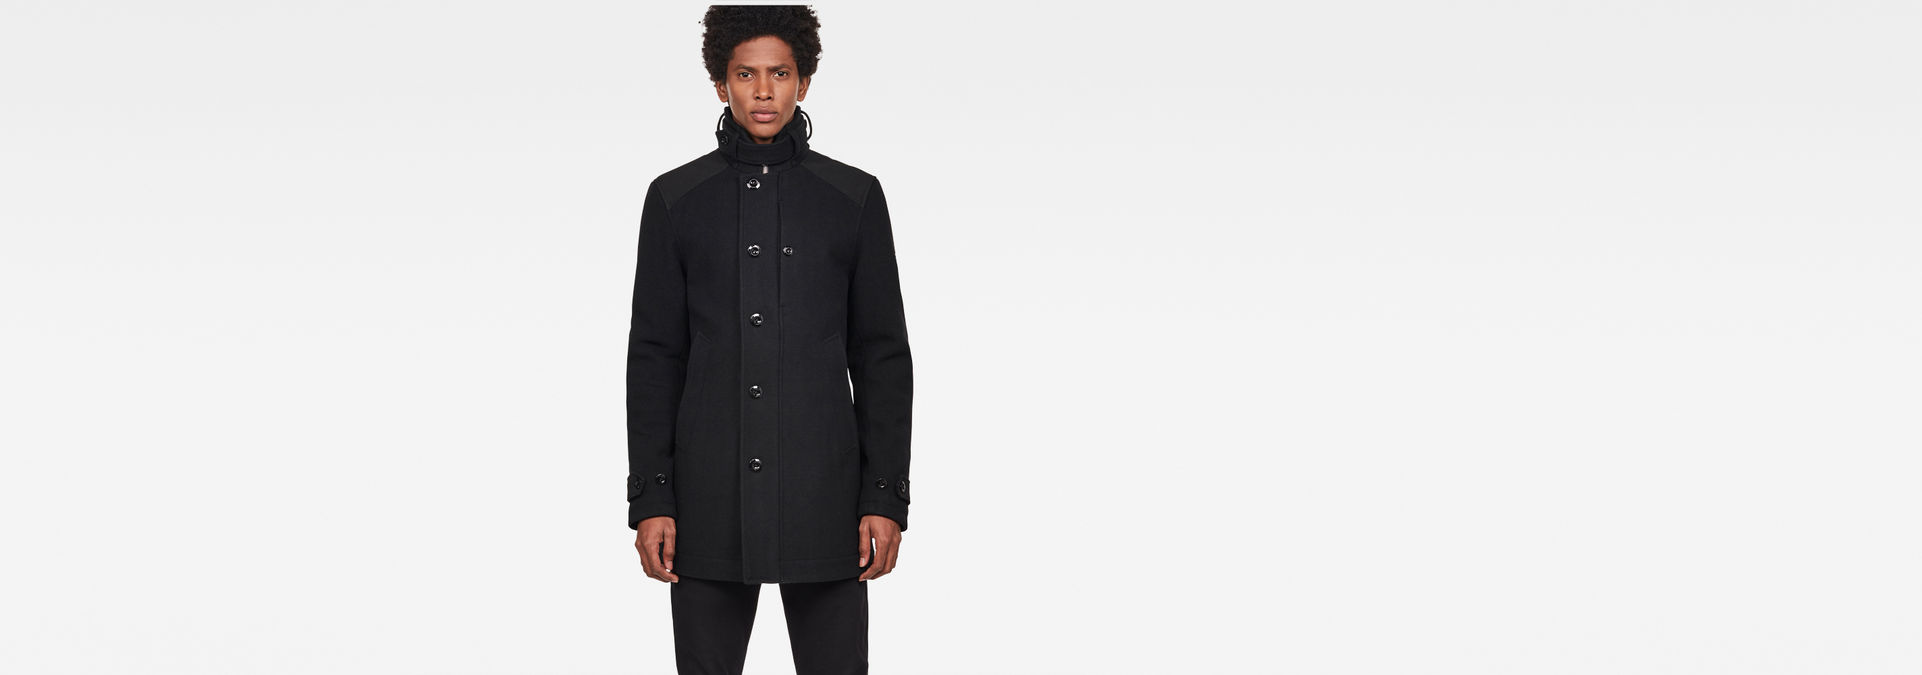 Garber Pm Wool Trench | Dark Black | Hommes | G Star RAW®